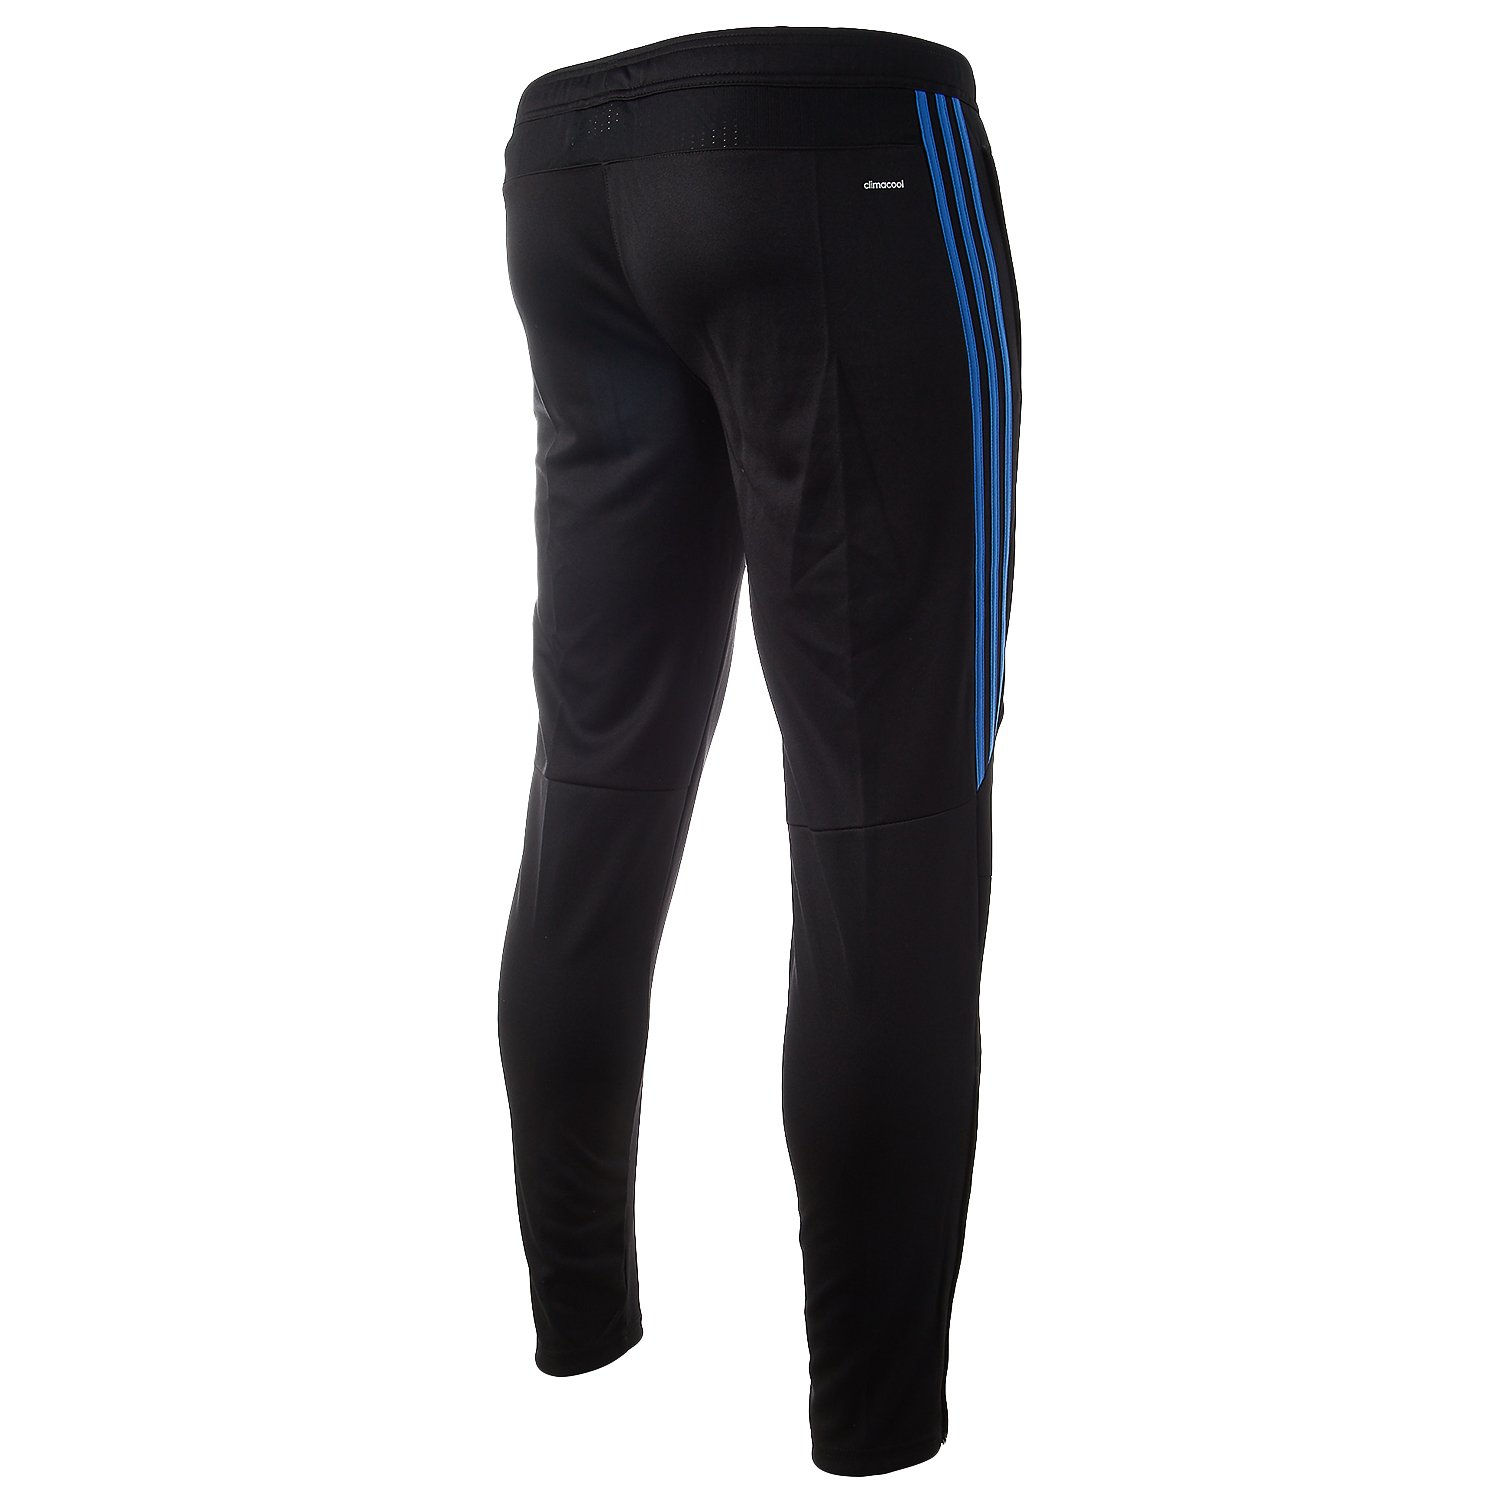 63797d9a57d4 Amazon.com  adidas Women s Soccer Tiro 17 Training Pants  Sports   Outdoors